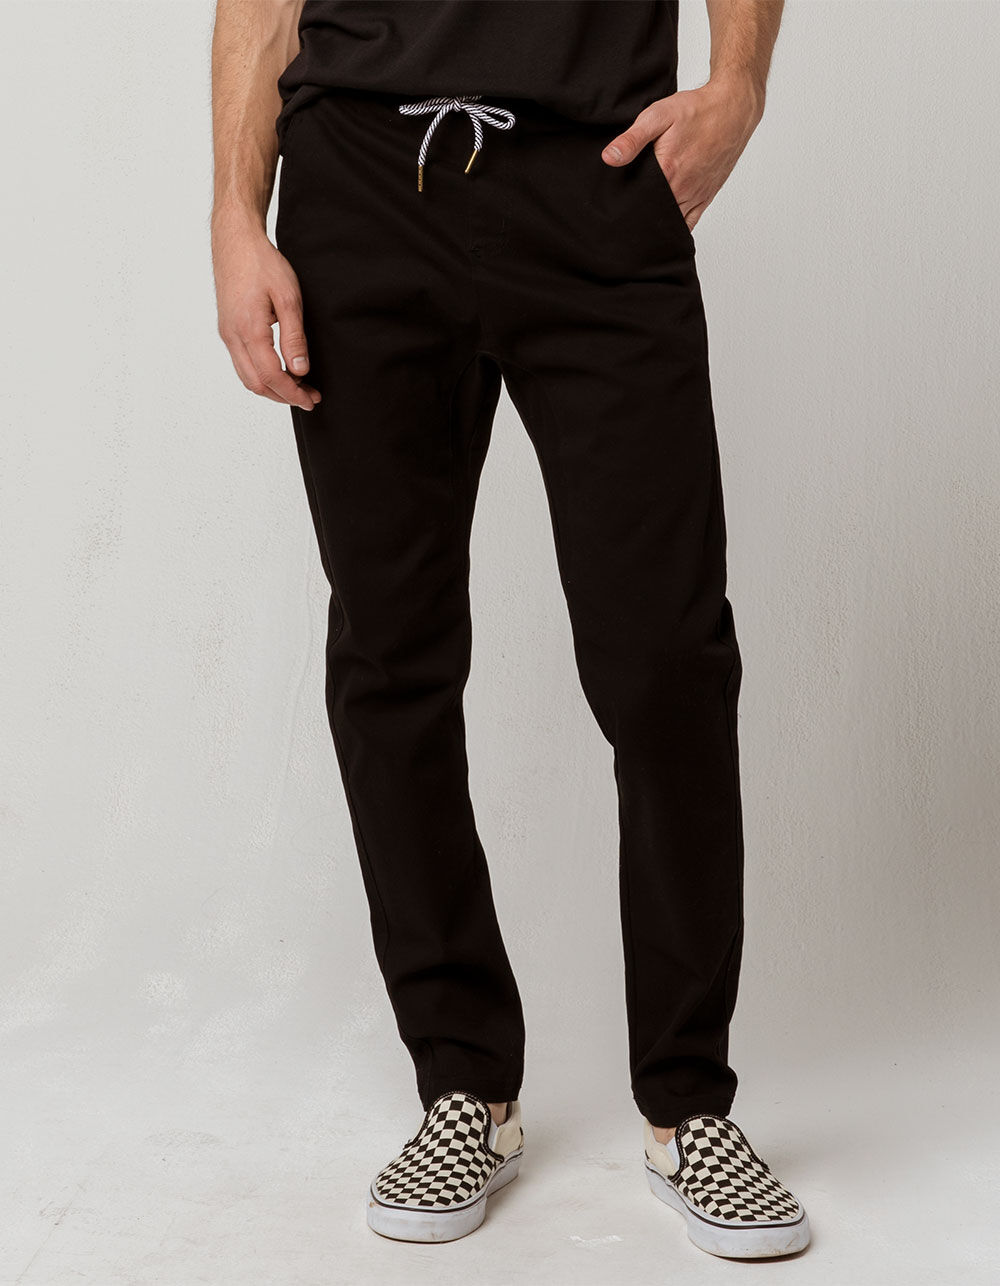 CHARLES AND A HALF Black Chino Jogger Pants